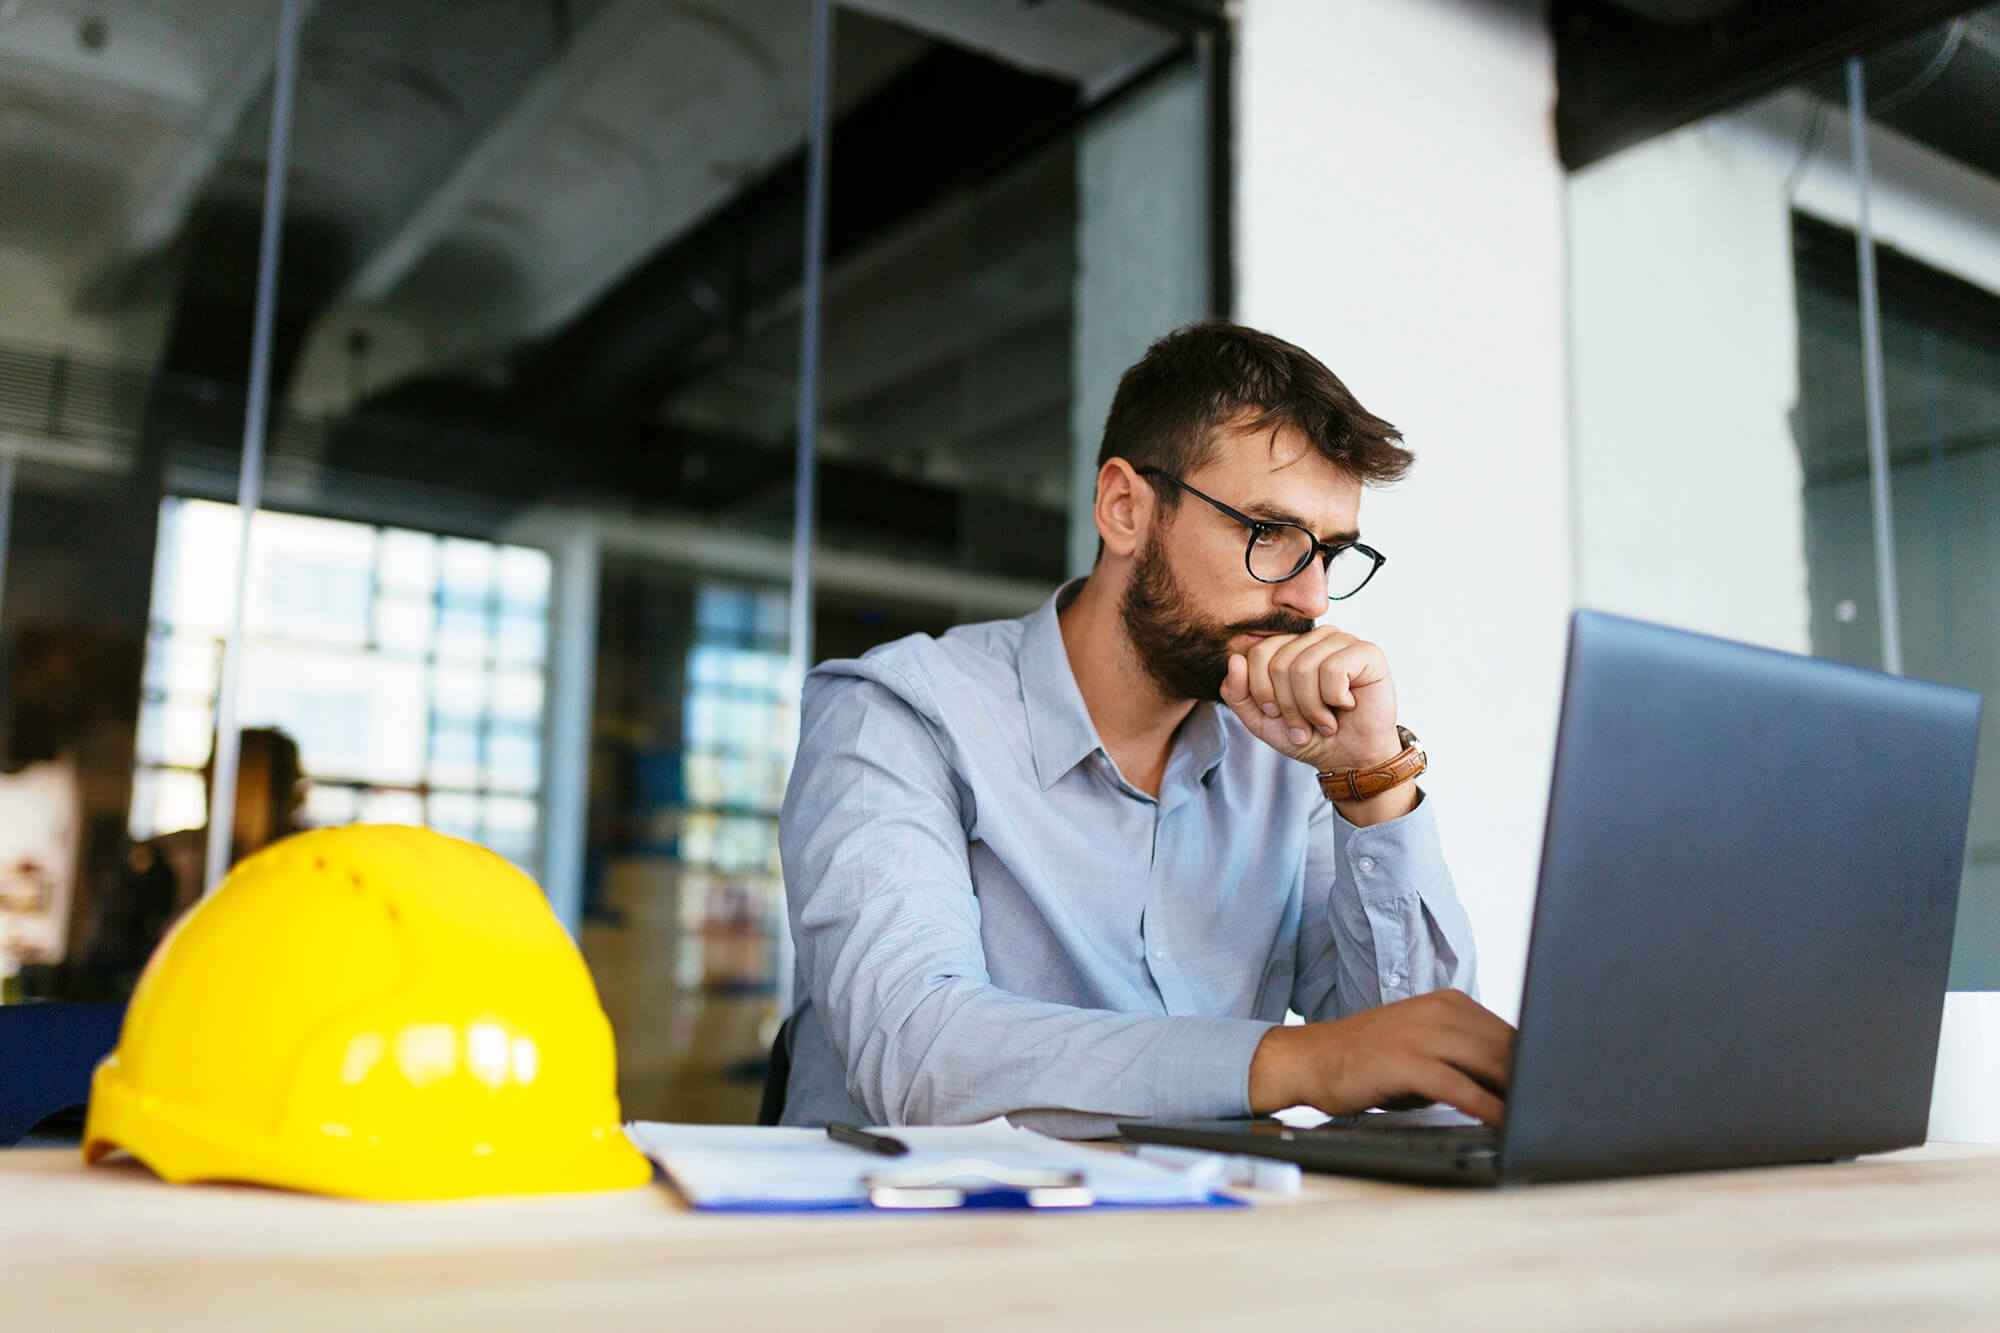 man thinking of blog topics on computer with yellow hard hat on the desk